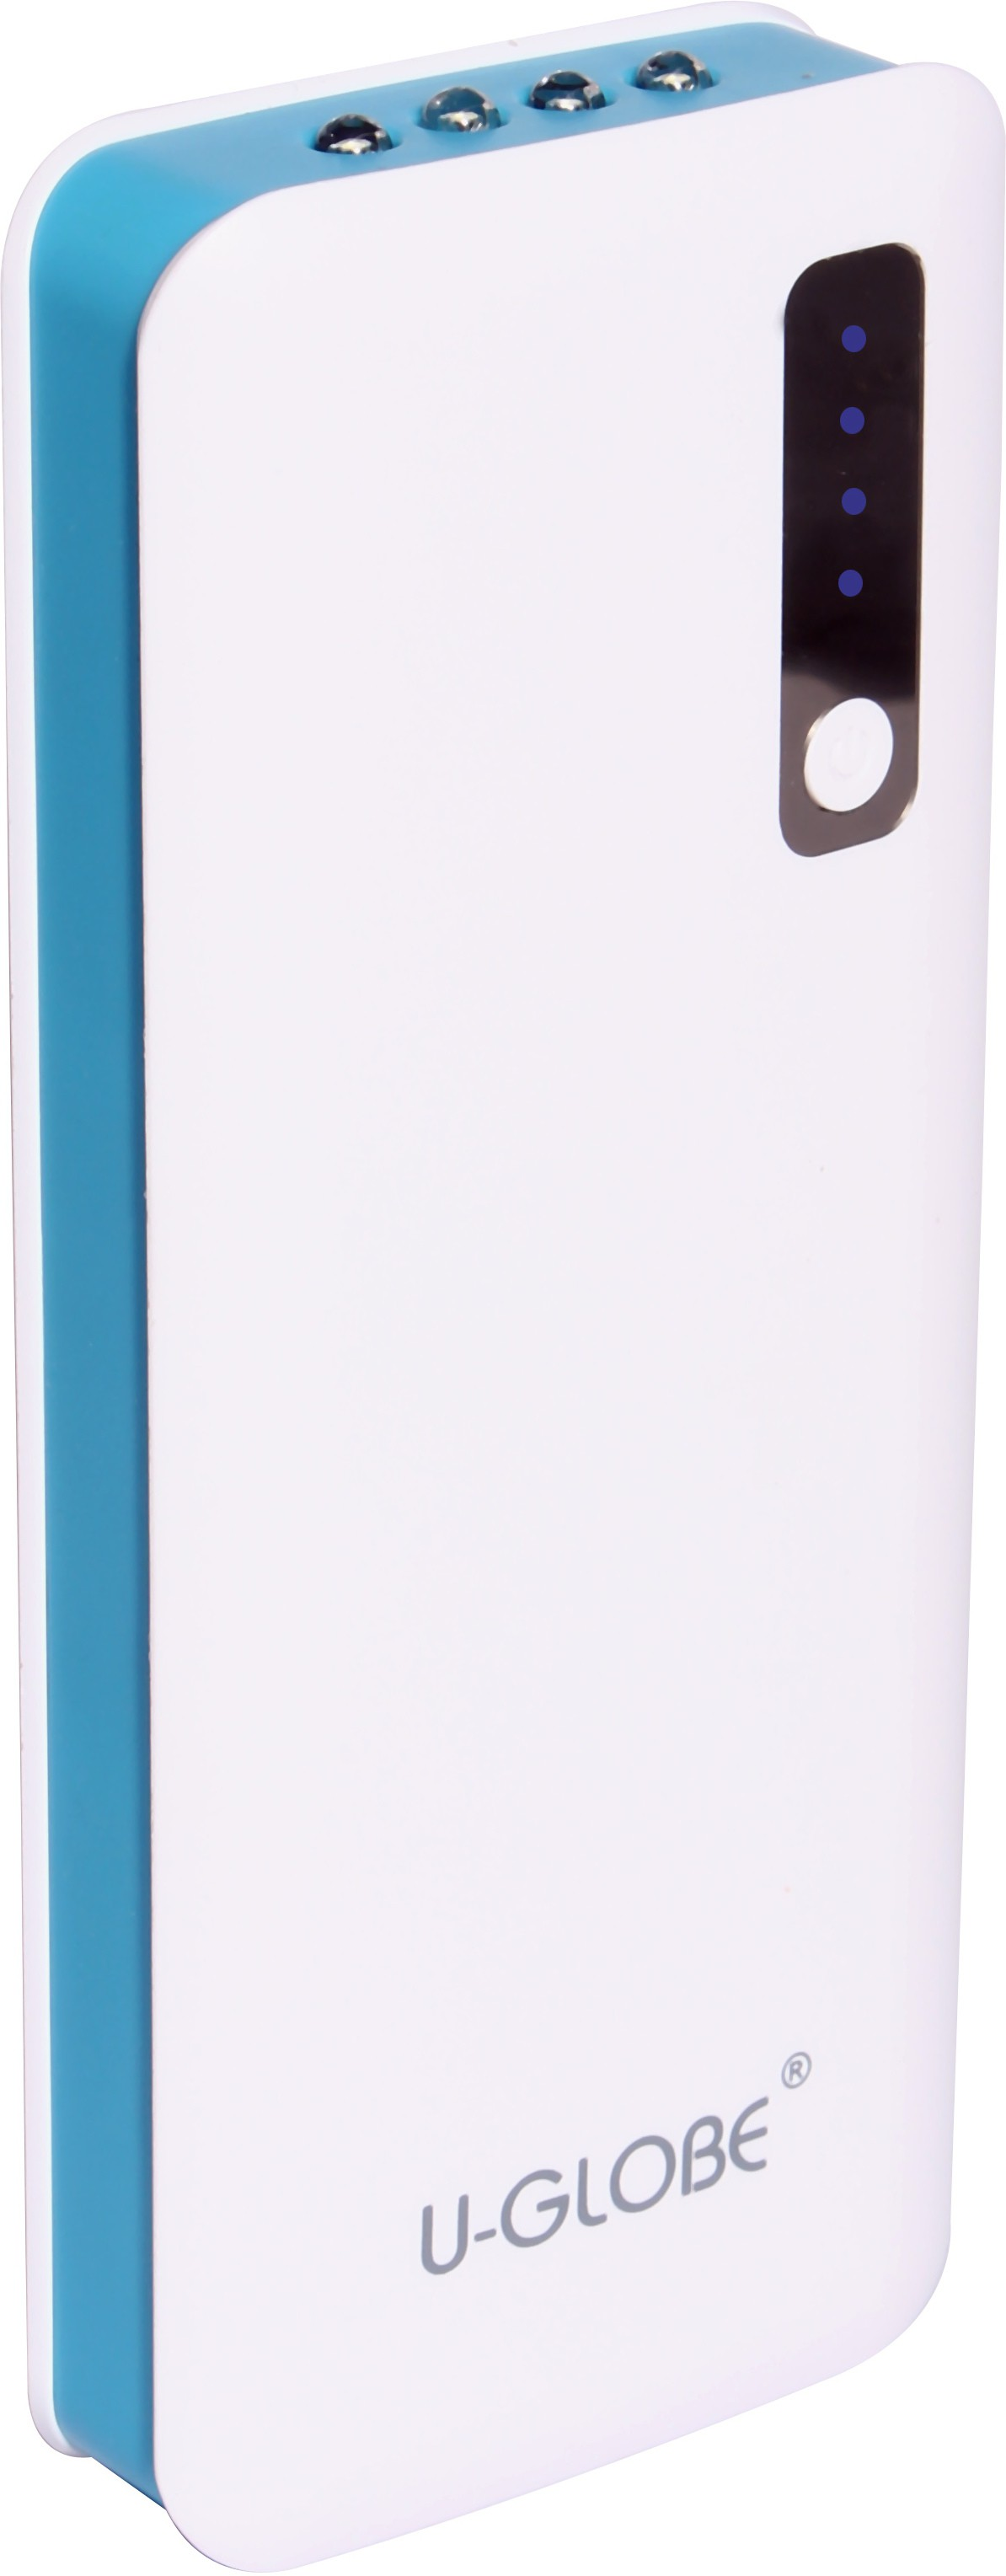 U-Globe UG-156 13000 mAh Power Bank(White, Blue, Lithium-ion)